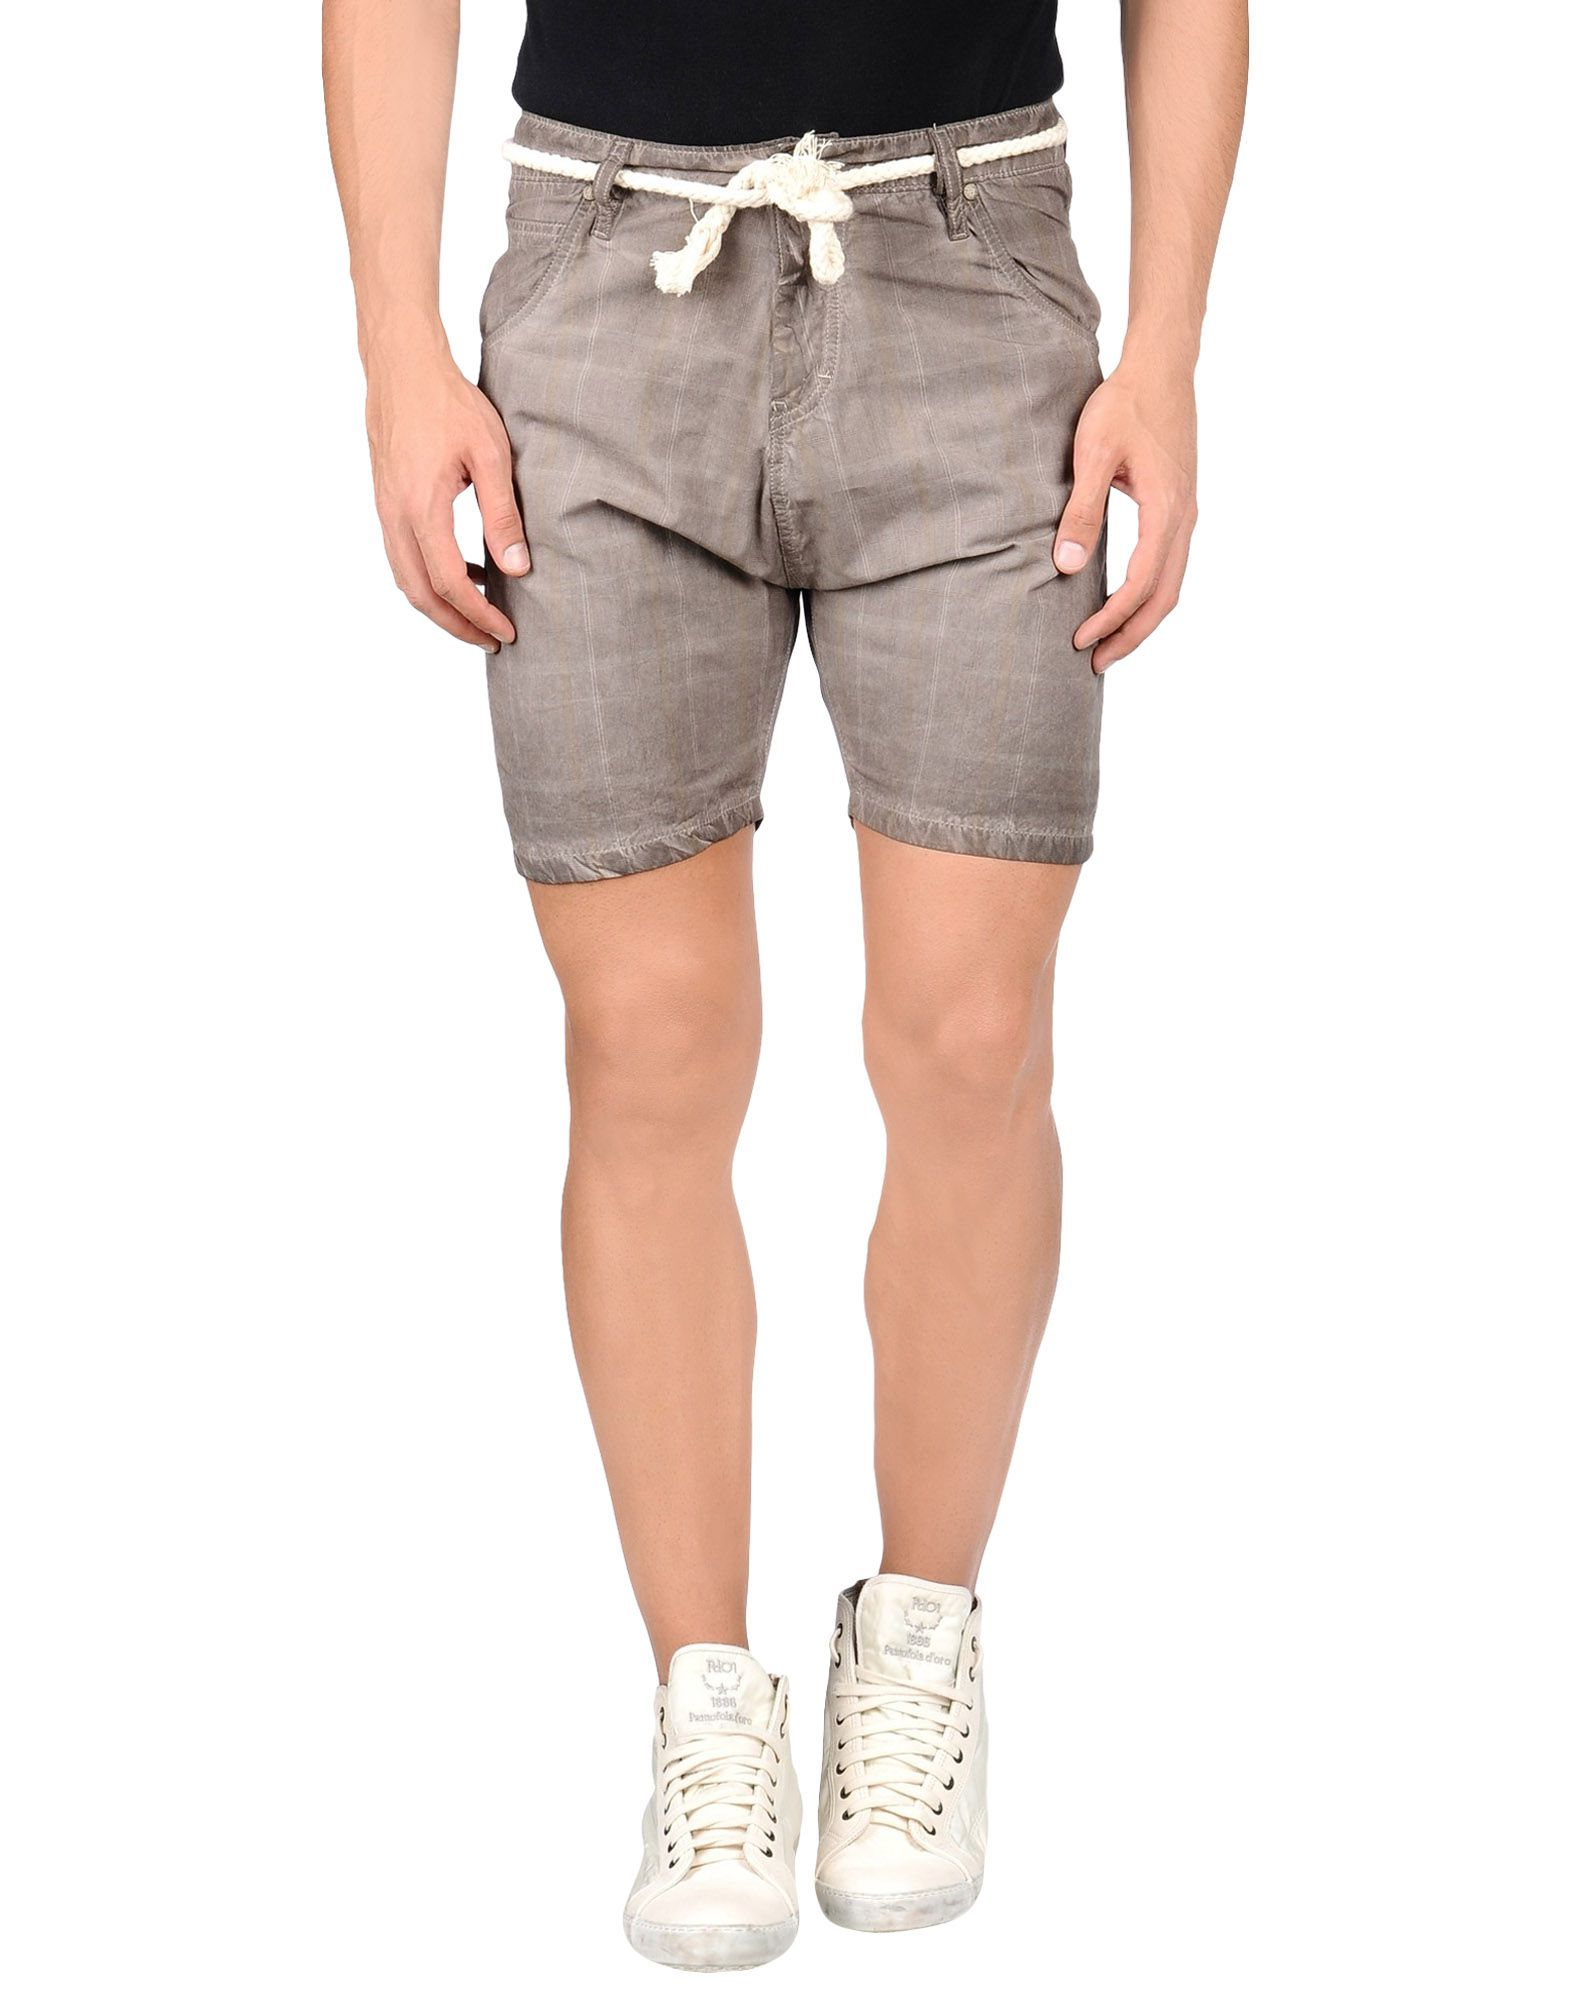 Bermuda Shorts for men are not uniquely Bermudian, they were created at the turn of the 20th century originally by British military forces - and not in Bermuda, in London. By men in desk jobs whose function it was to see their soldiers and navy personnel were appropriately but lightly attired for duty at British Army garrisons and Royal Navy.